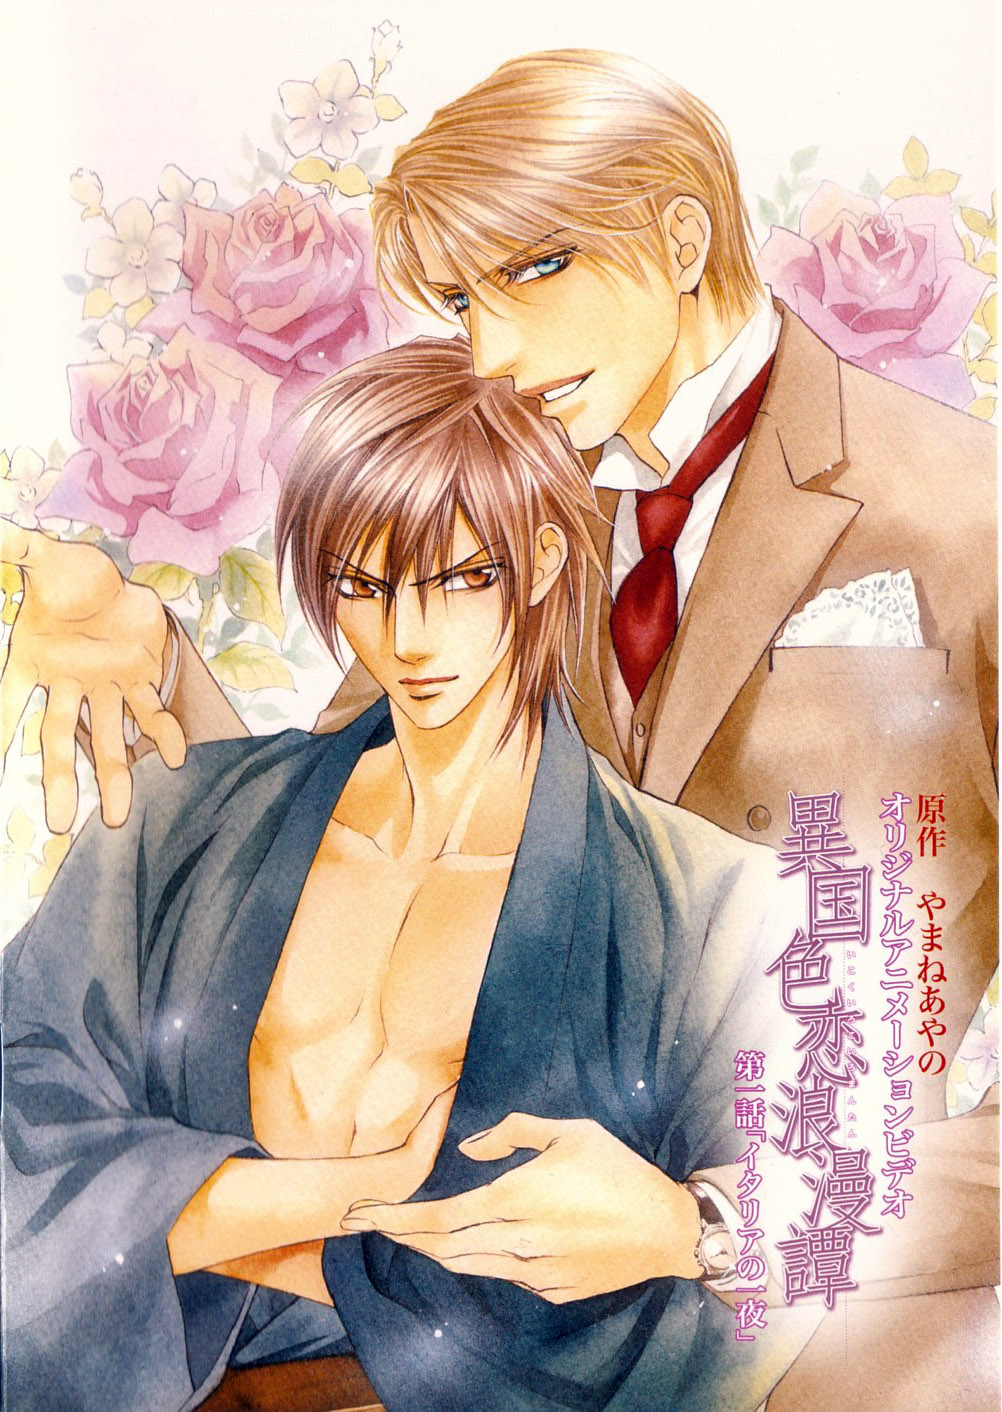 Ikoku Irokoi Romantan yaoi manga cover by Ayano Yamane Alberto Valentiano and Ranmaru Omi boys love gay beautiful art Shounen ai manga roses background two man bishounen yaoi phone wallpaper - Let me have you ikoku-irokoi-romantan-a-foreign-love-affair-yaoi Yaoi phone wallpapers Yakuza Formal wear Bishōnen - fanarts on yaoi-online.com